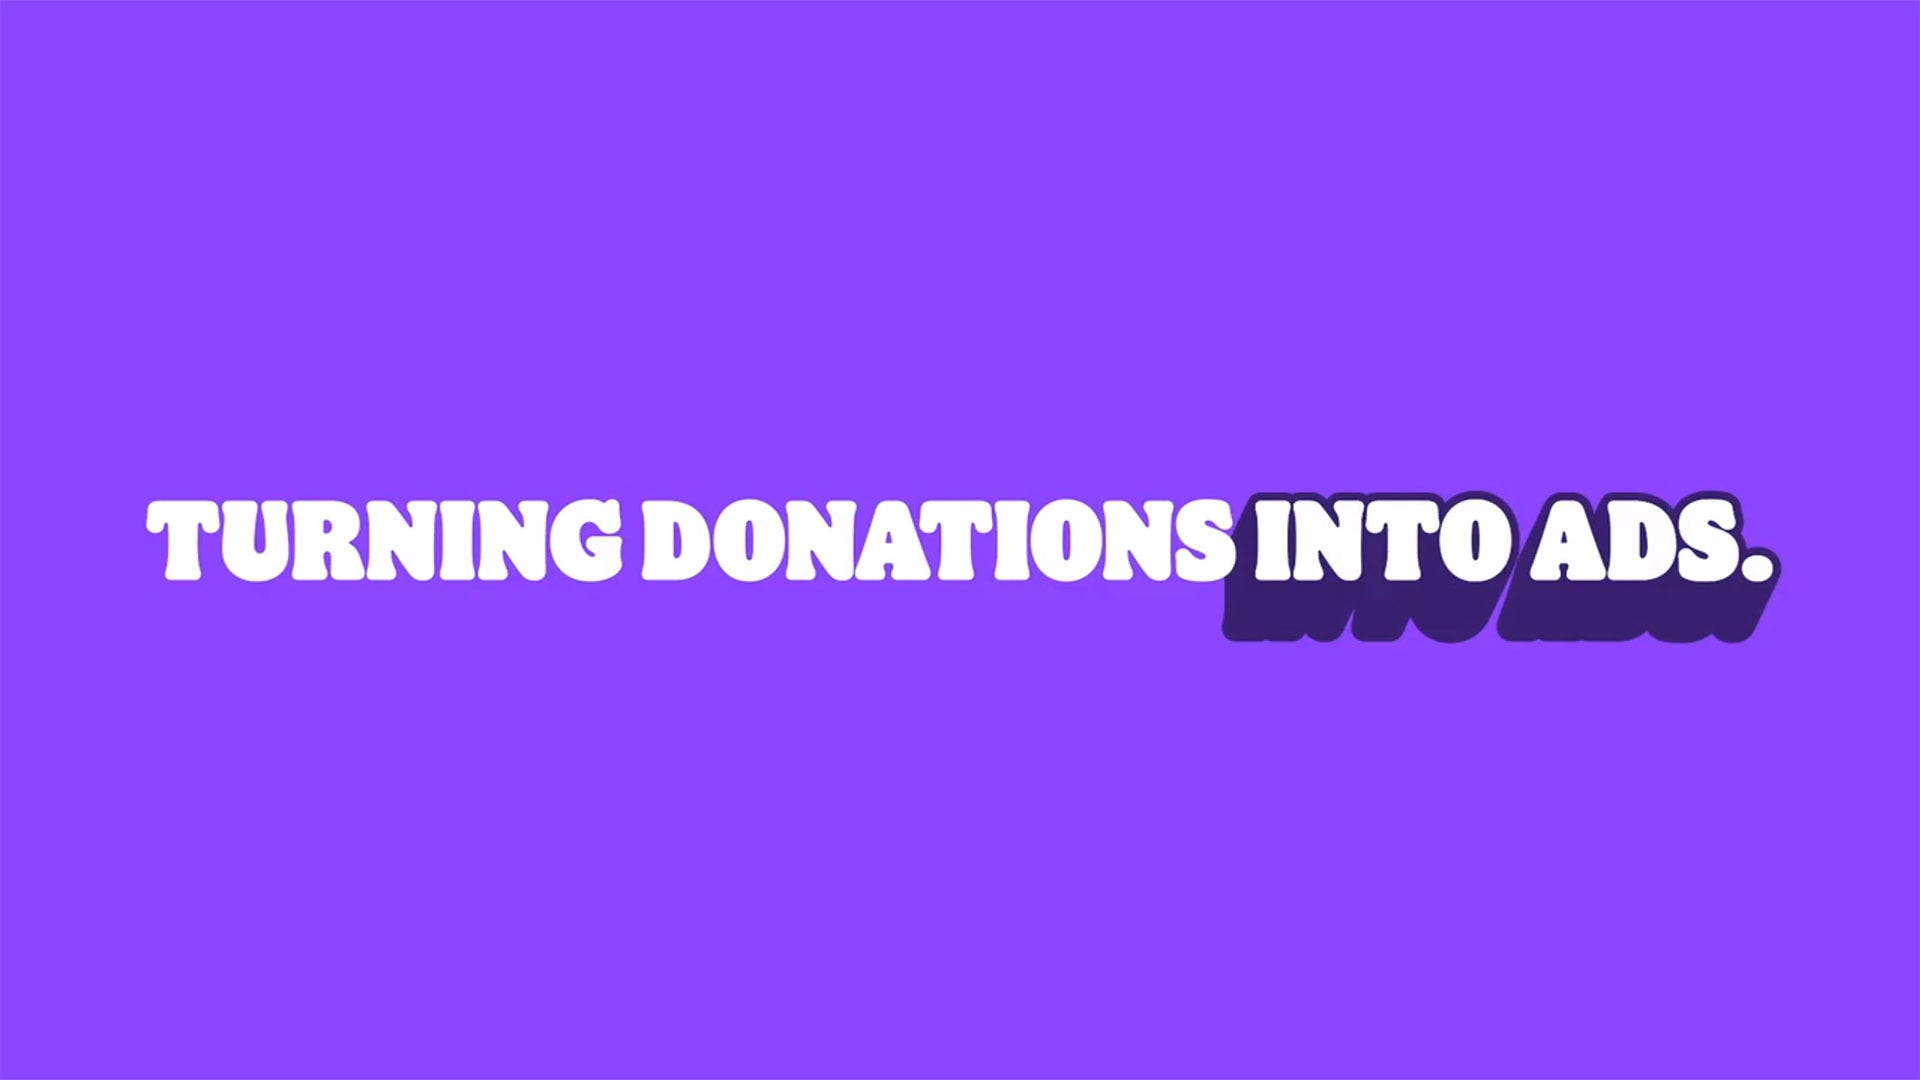 Oglivy boasts that it's turning stream donations into ads.